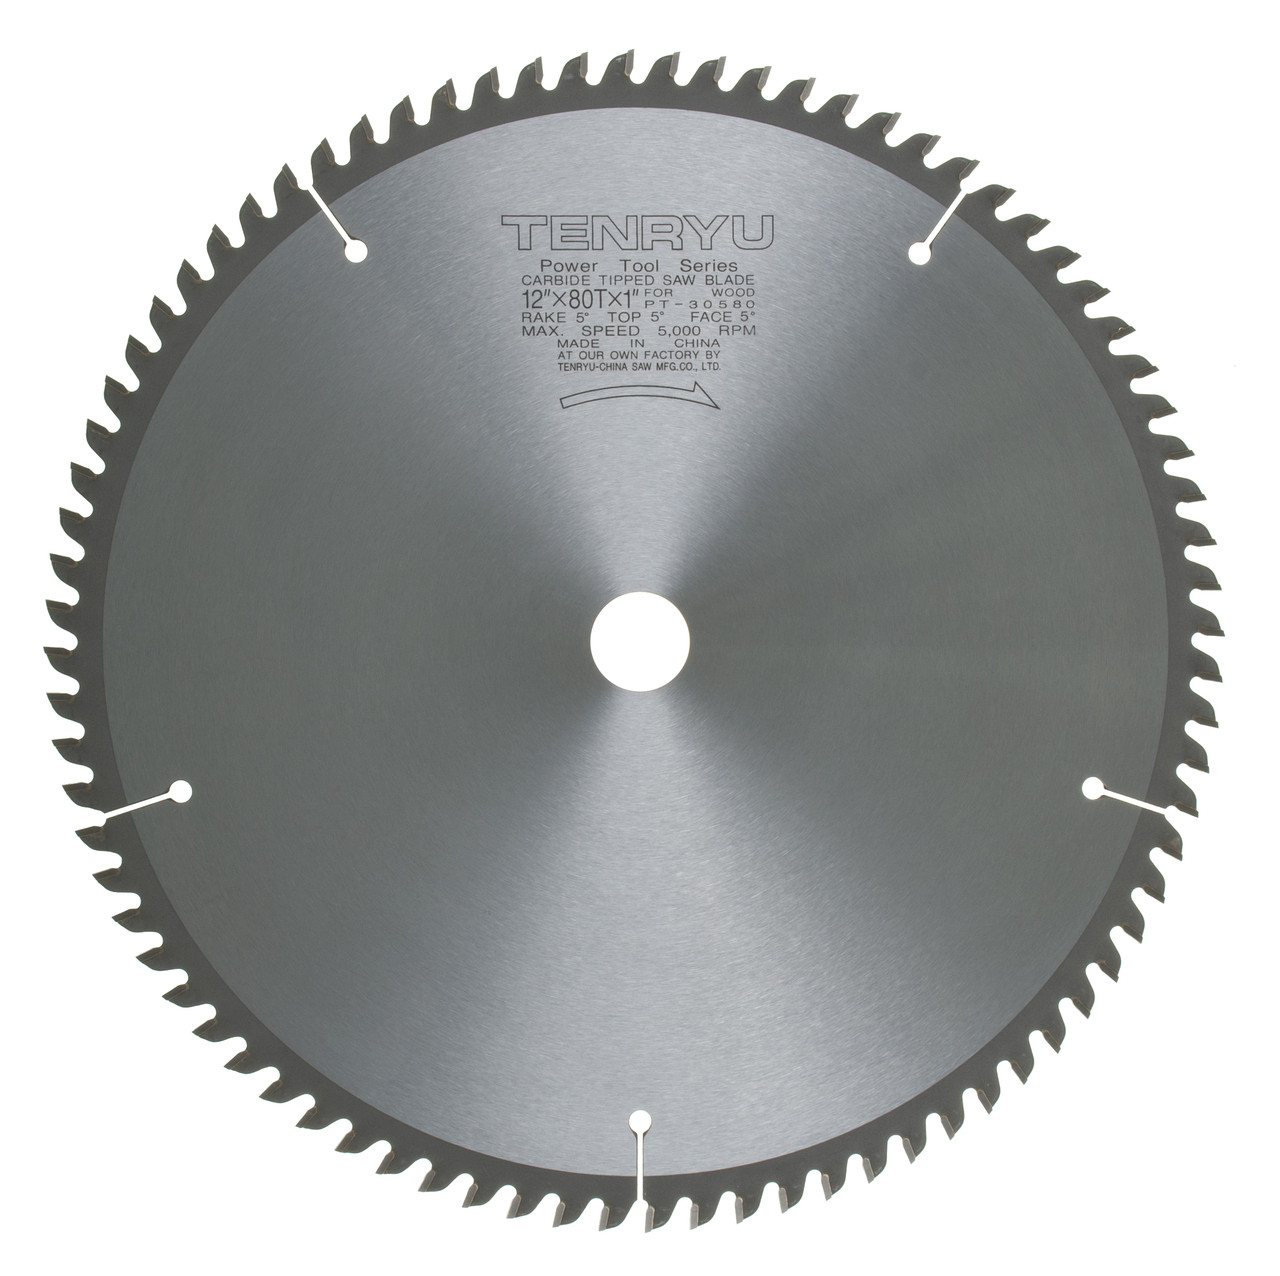 Power Tool Saw Blade, 12